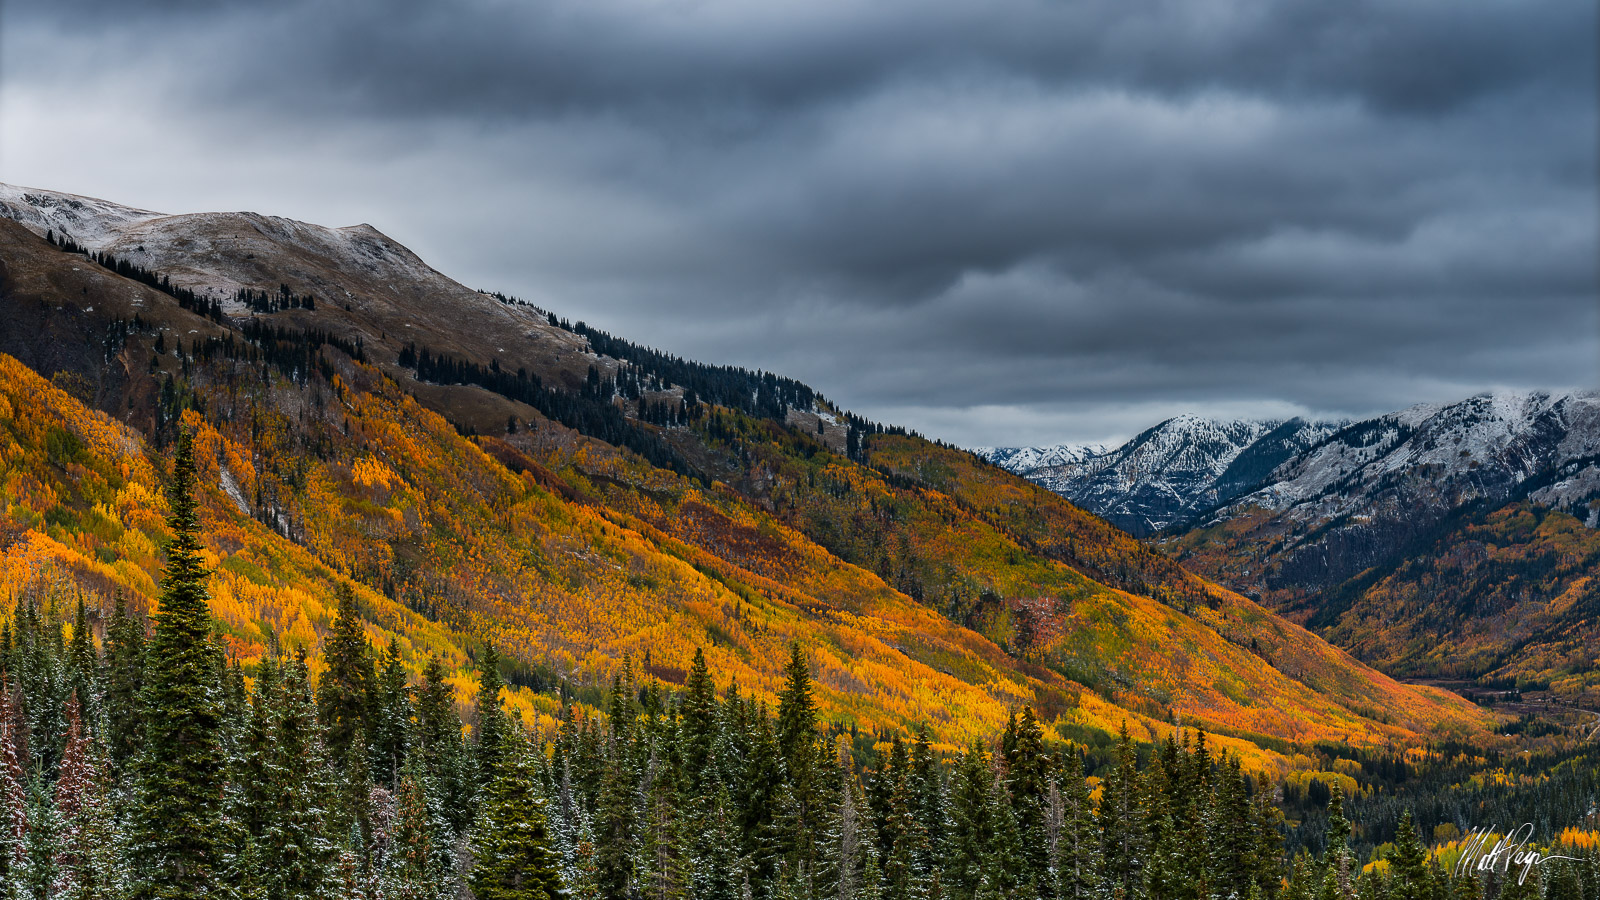 Silverton, Colorado, Ouray, Fall Colors, aspen trees, yellow, gold, panoramic, Red Mountain Pass, moody, cloudy, Landscape Photography, photo